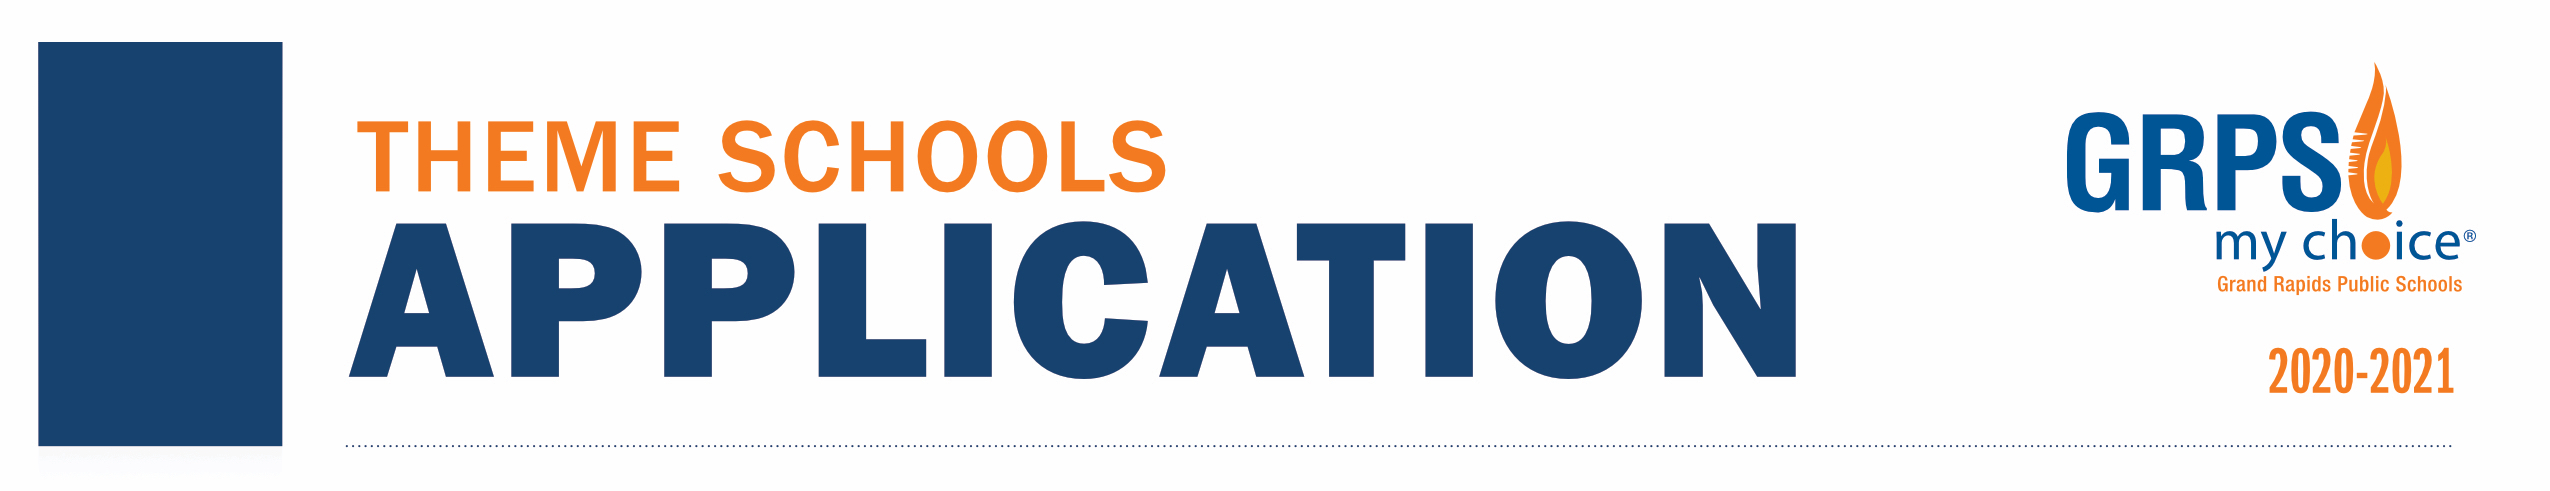 Applications & Enrollment Information Inside Grps School Calendar 2021